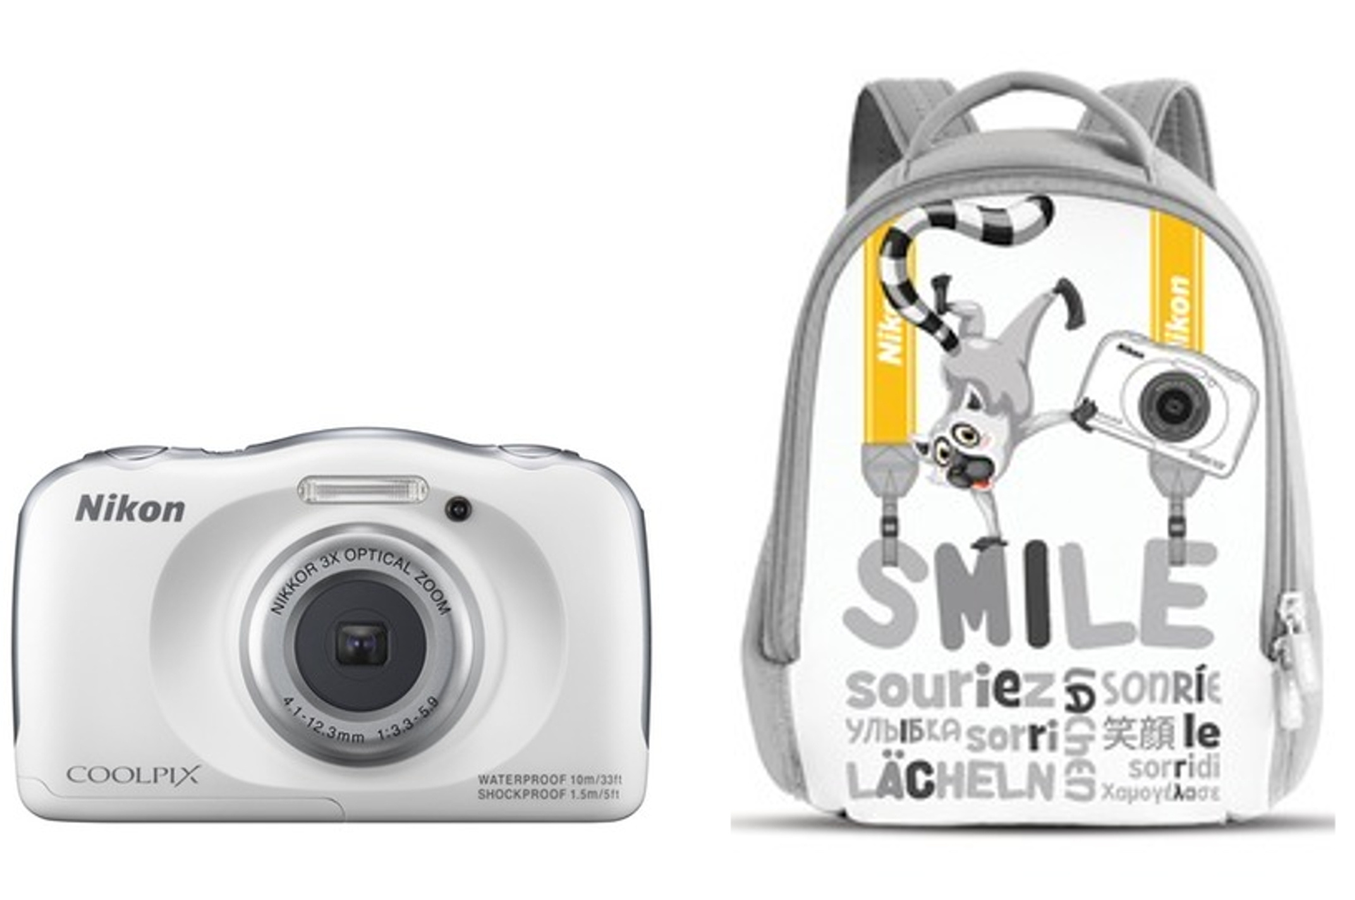 Appareil photo compact nikon coolpix s33 kit sac a dos for Appareil convivial